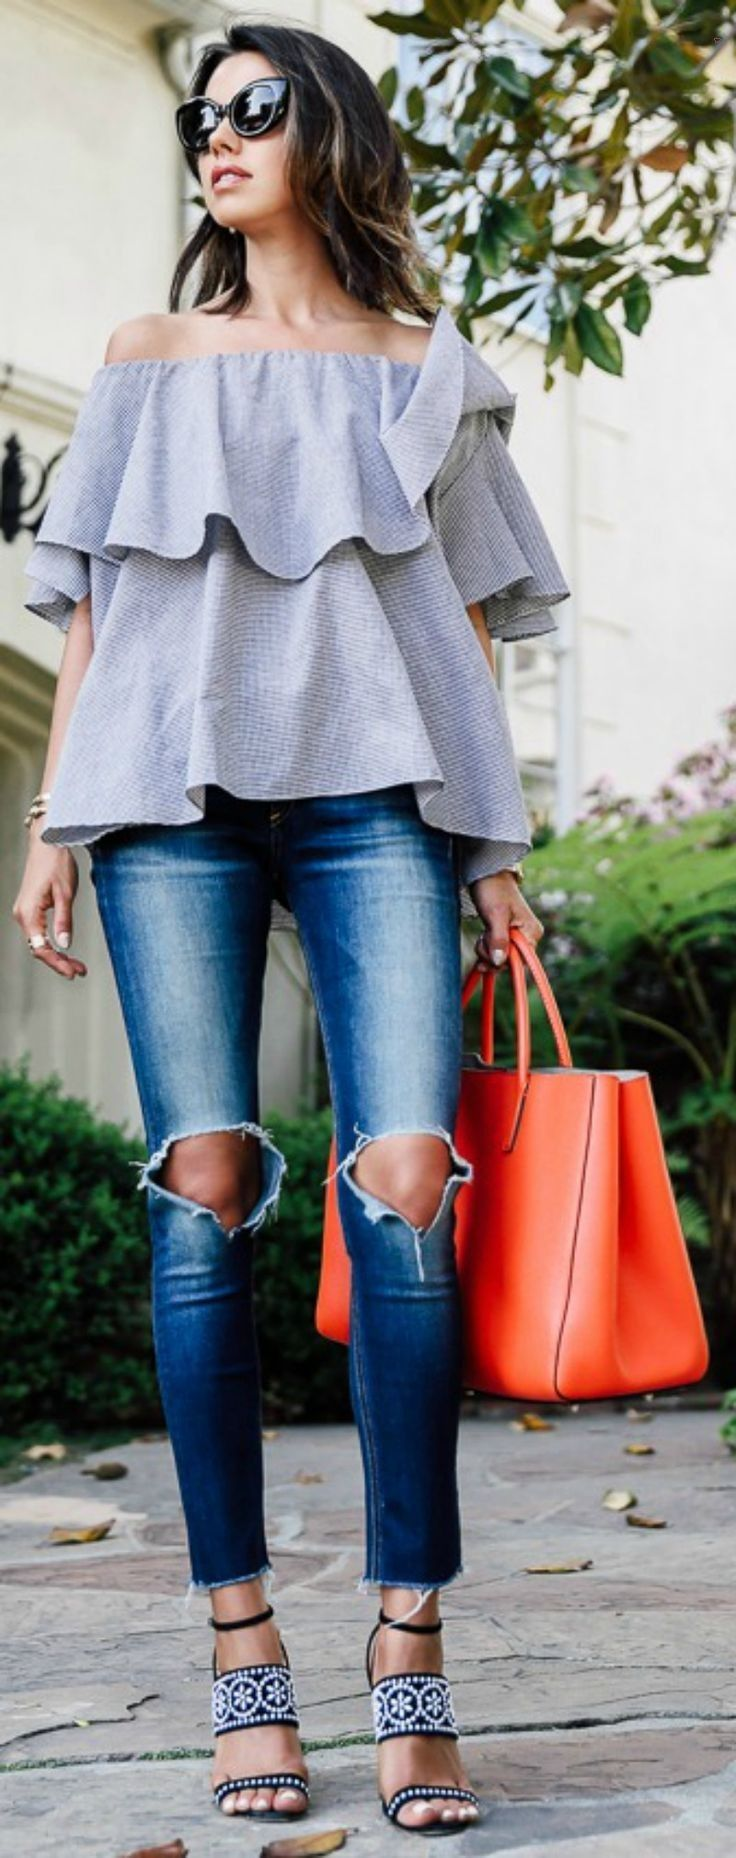 floaty and layered + off the shoulder top + gorgeous + feminine look + spring + summer wear + style + with patterned sandals + Annabelle Fleur Top: Mlm Label Maison, Jeans: Blank Denim, Sandals: Tabitha Simmons... - Street Fashion